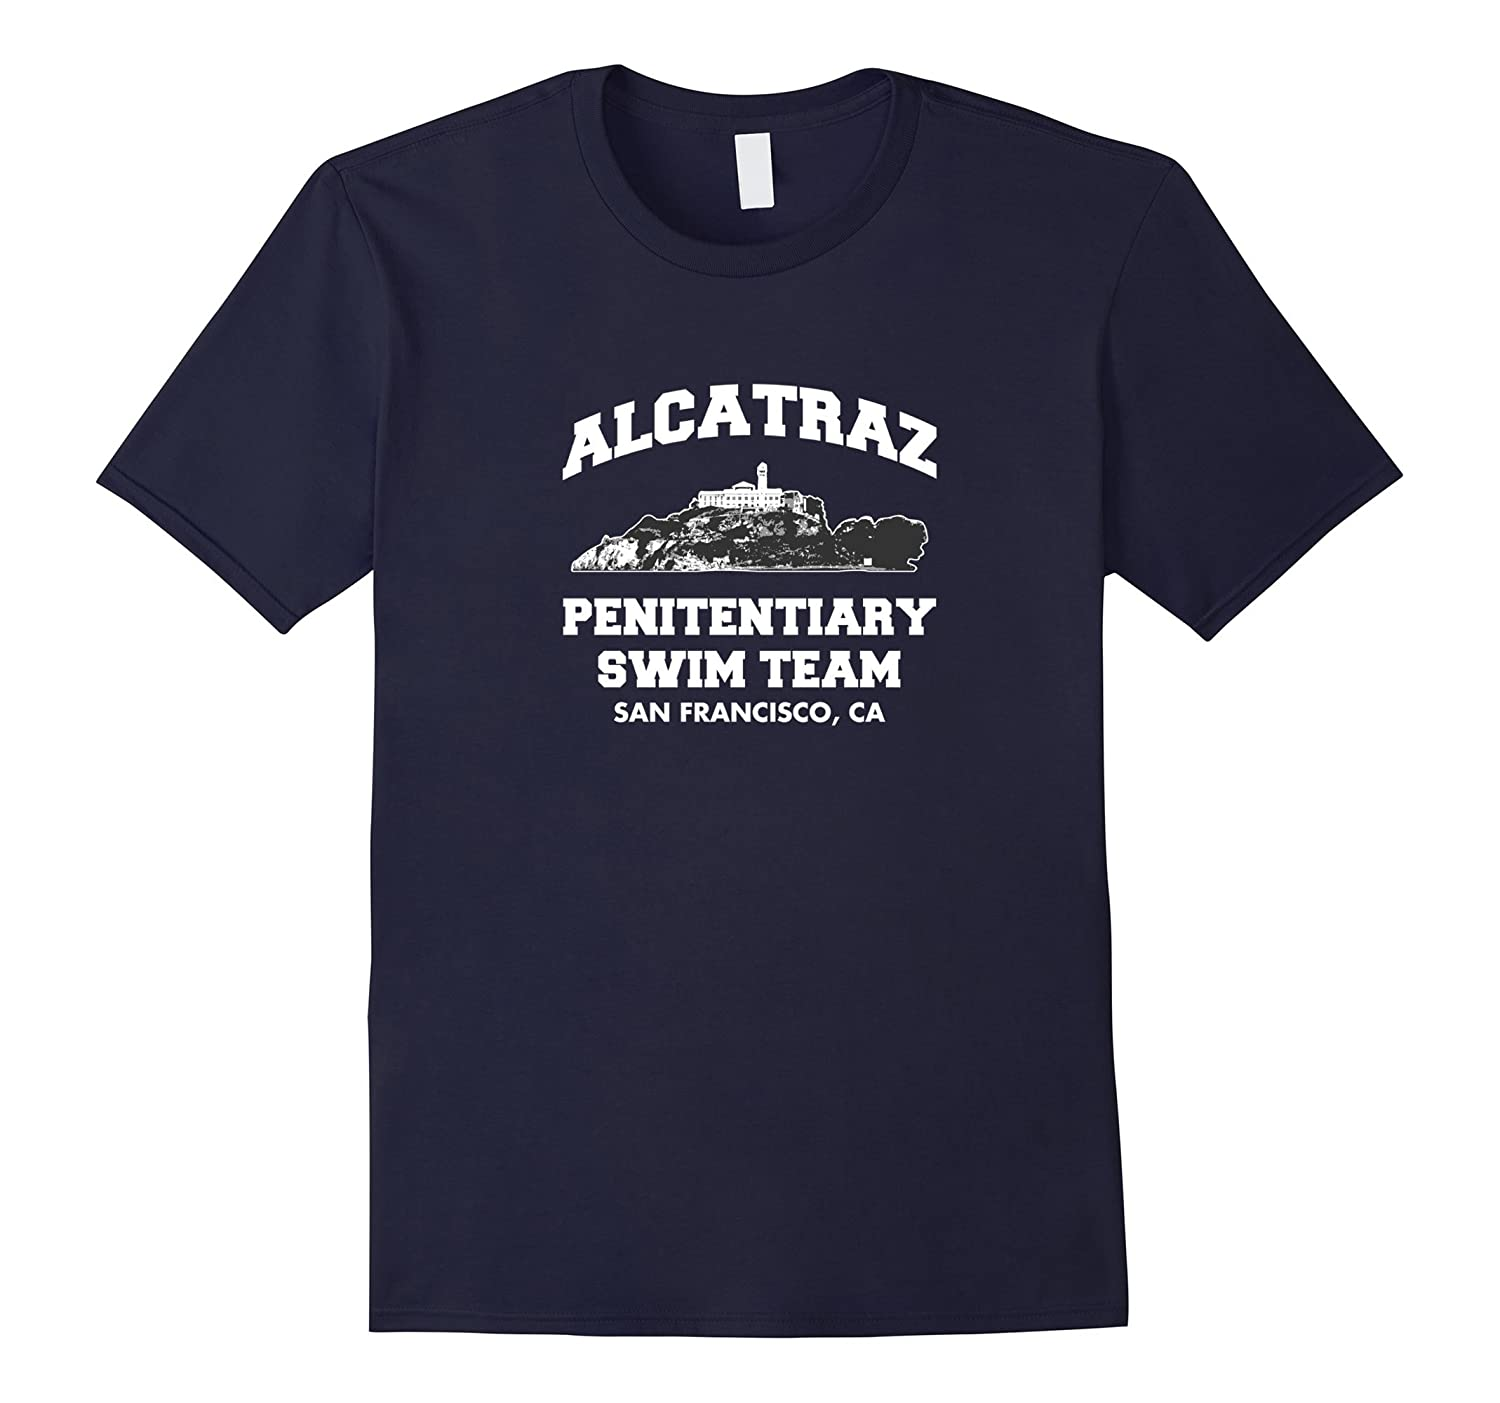 Alcatraz Penitentiary Swim Team California T-Shirt-FL